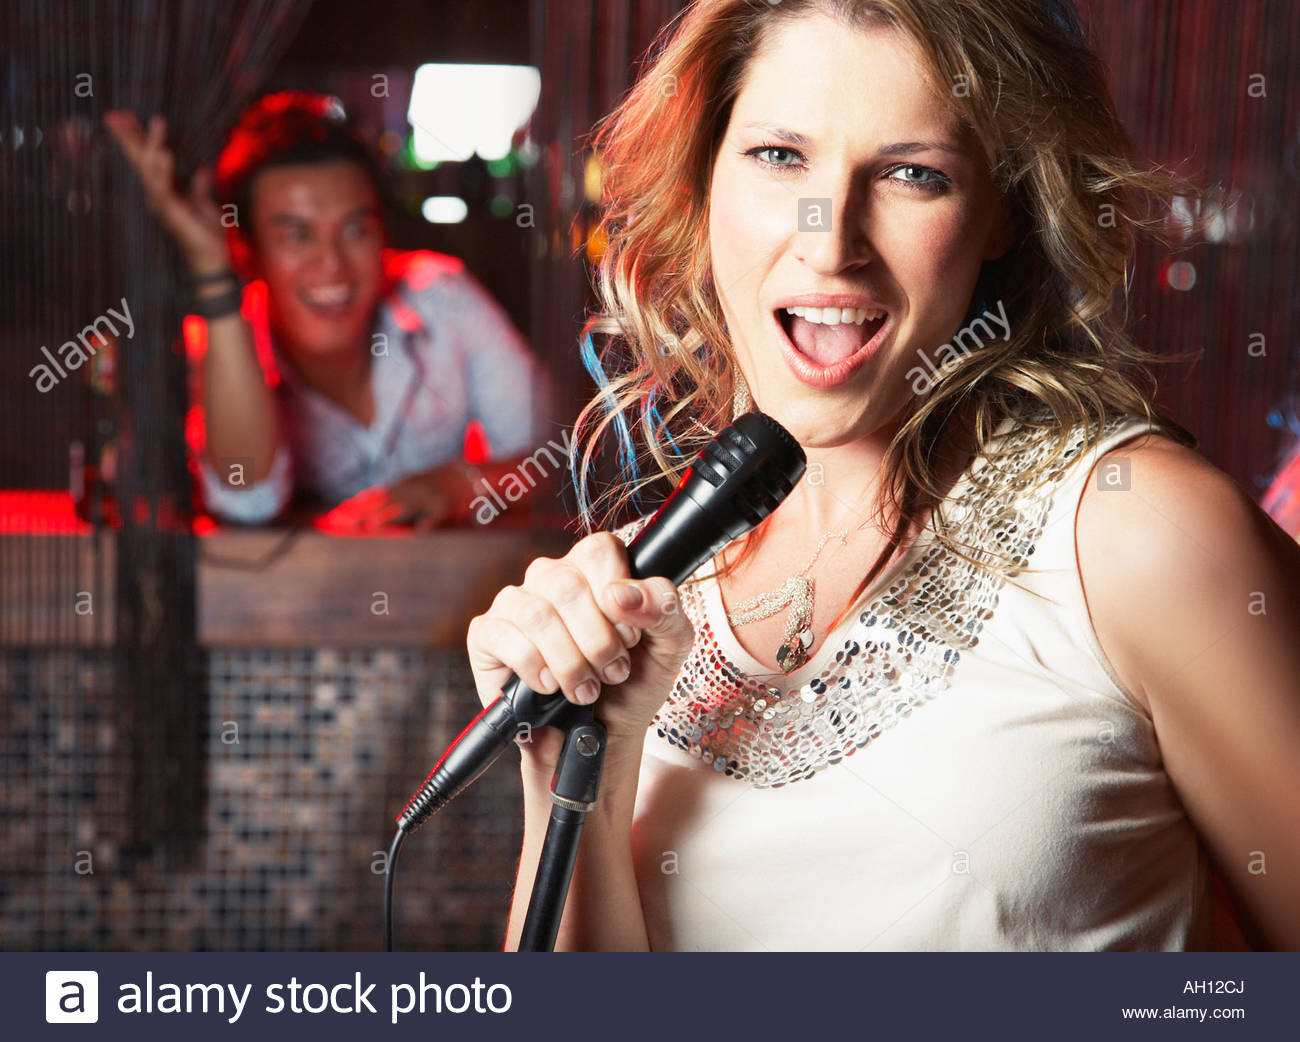 A woman singing at a club - Stock Image